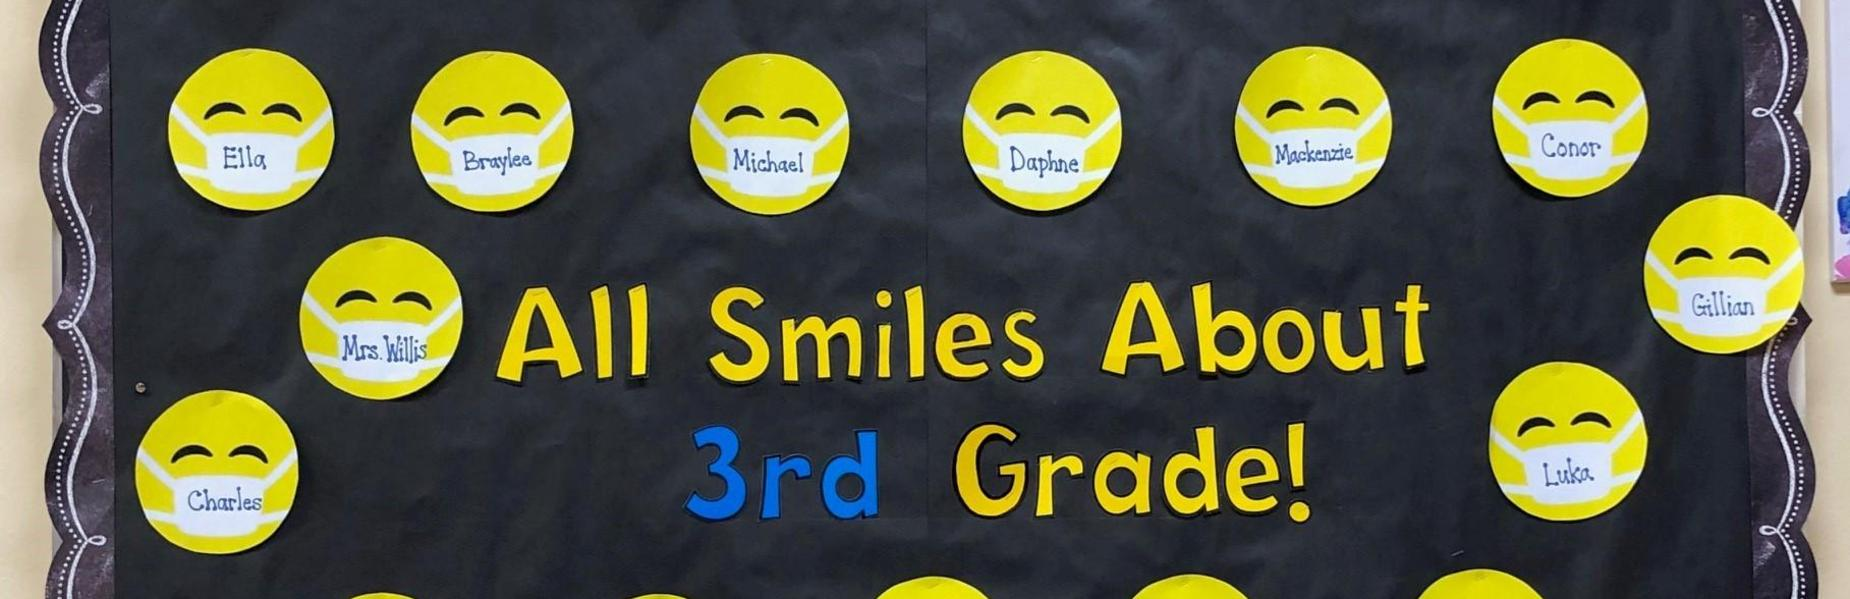 Photo of wilson 3rd grade bulletin with smiling faces wearing masks.